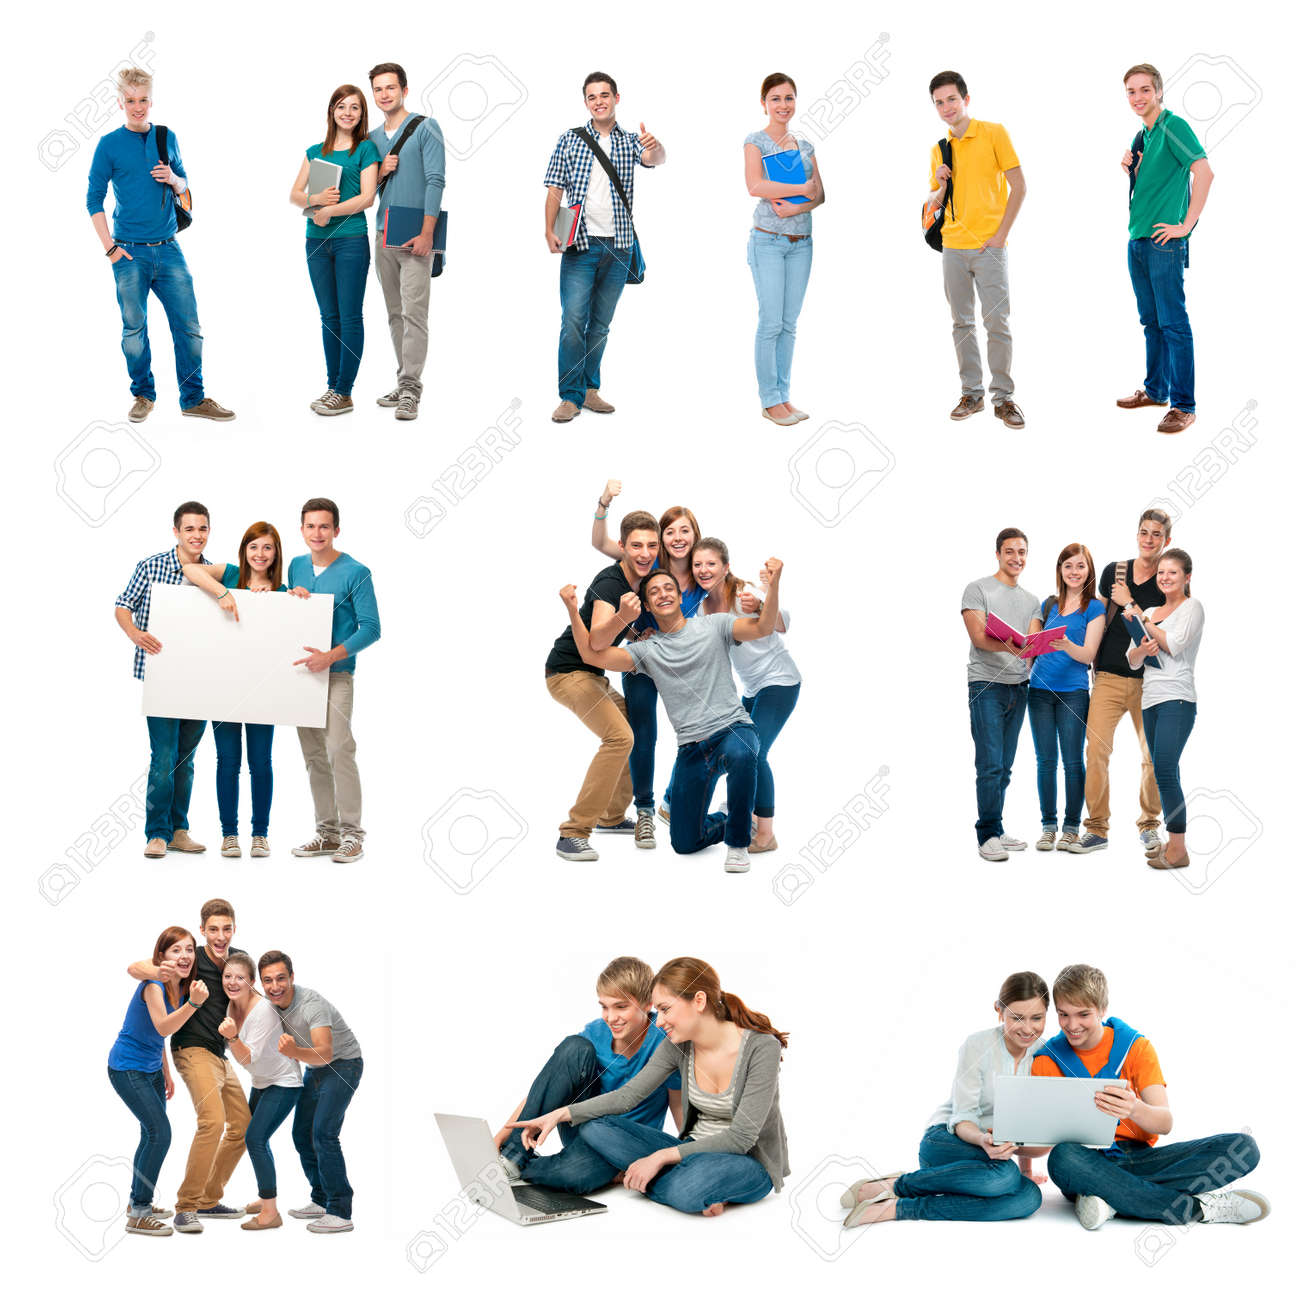 college graduation stock photos pictures royalty college college graduation group of students isolated over white background